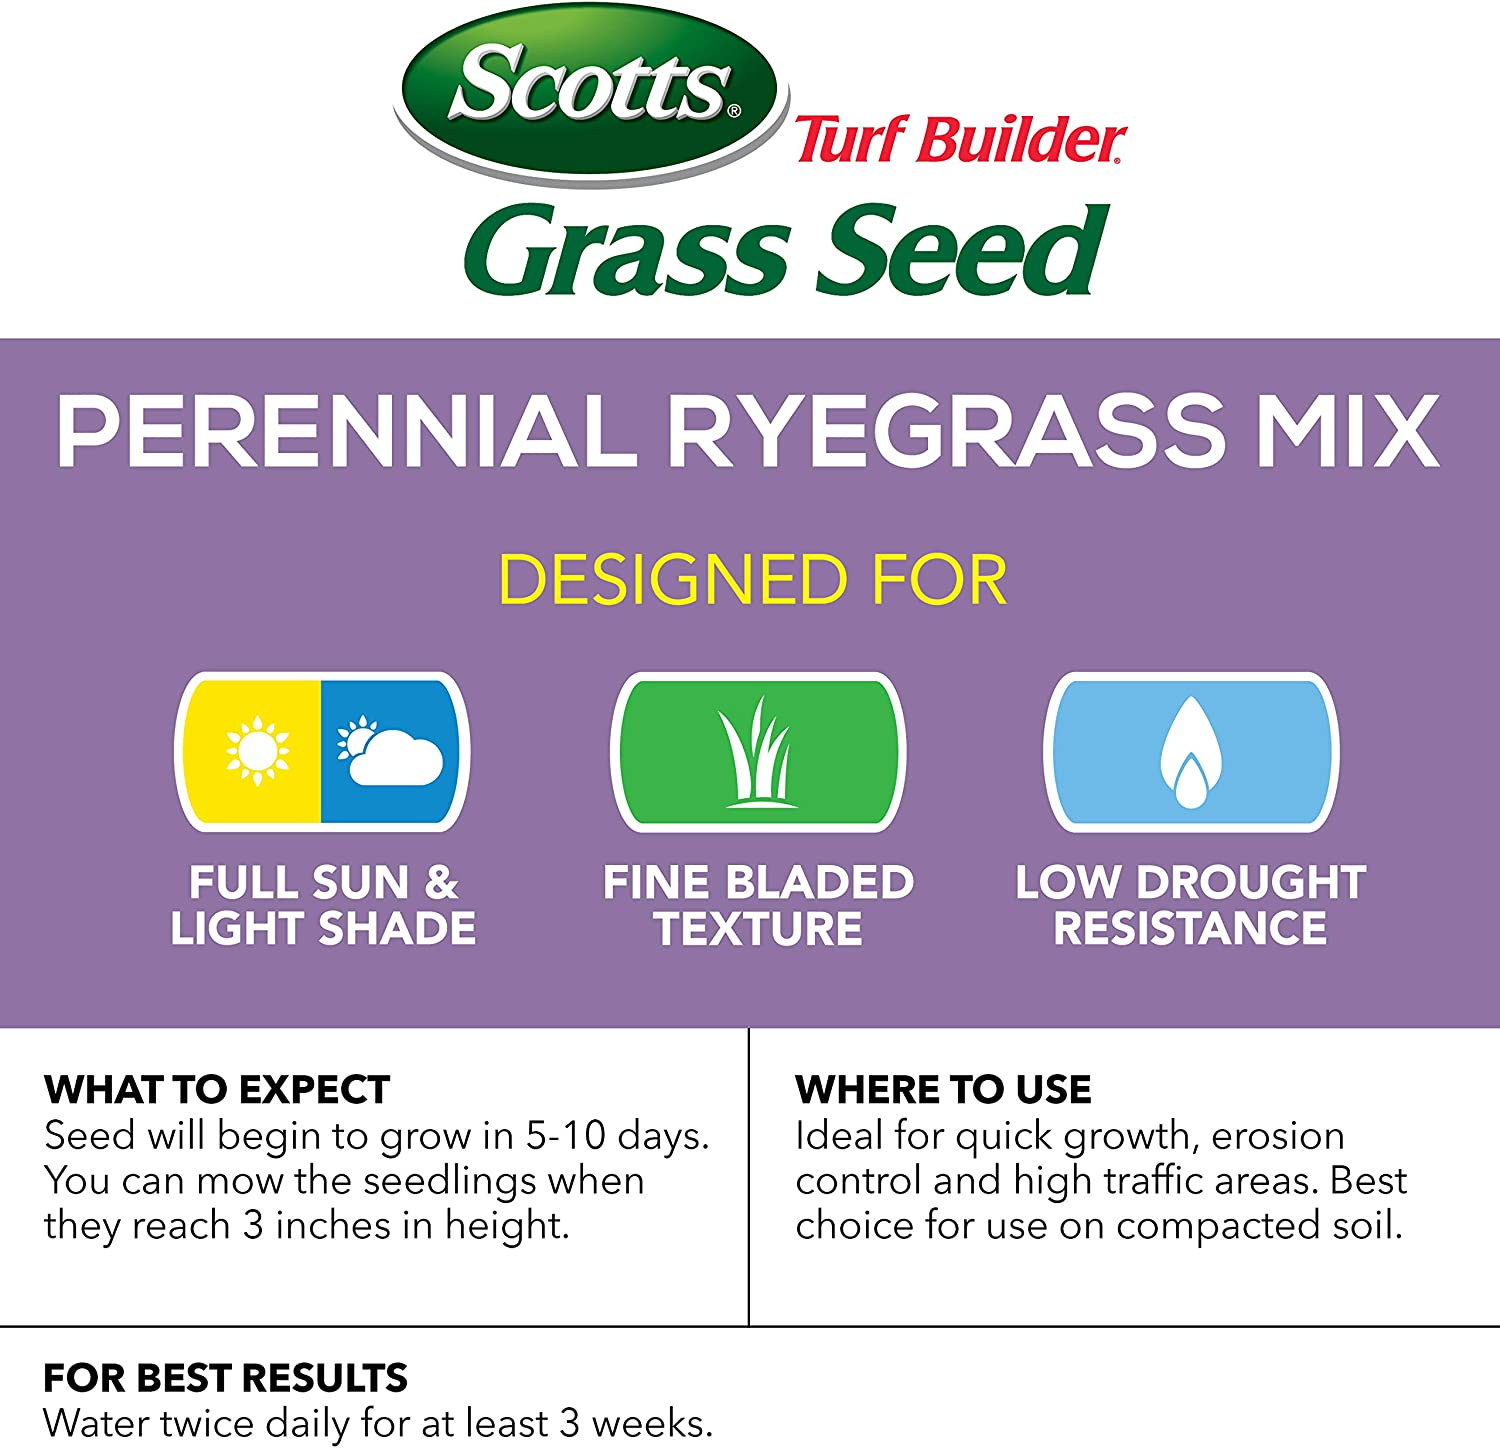 Scotts Turf Builder Grass Seed Perennial Ryegrass Mix, 7.lb. - Full Sun and Light Shade - Quickly Repairs Bare Spots, Ideal for High Traffic Areas and Erosion Control - Seeds up to 2, 900 sq. ft. : Grass Plants : Garden & Outdoor